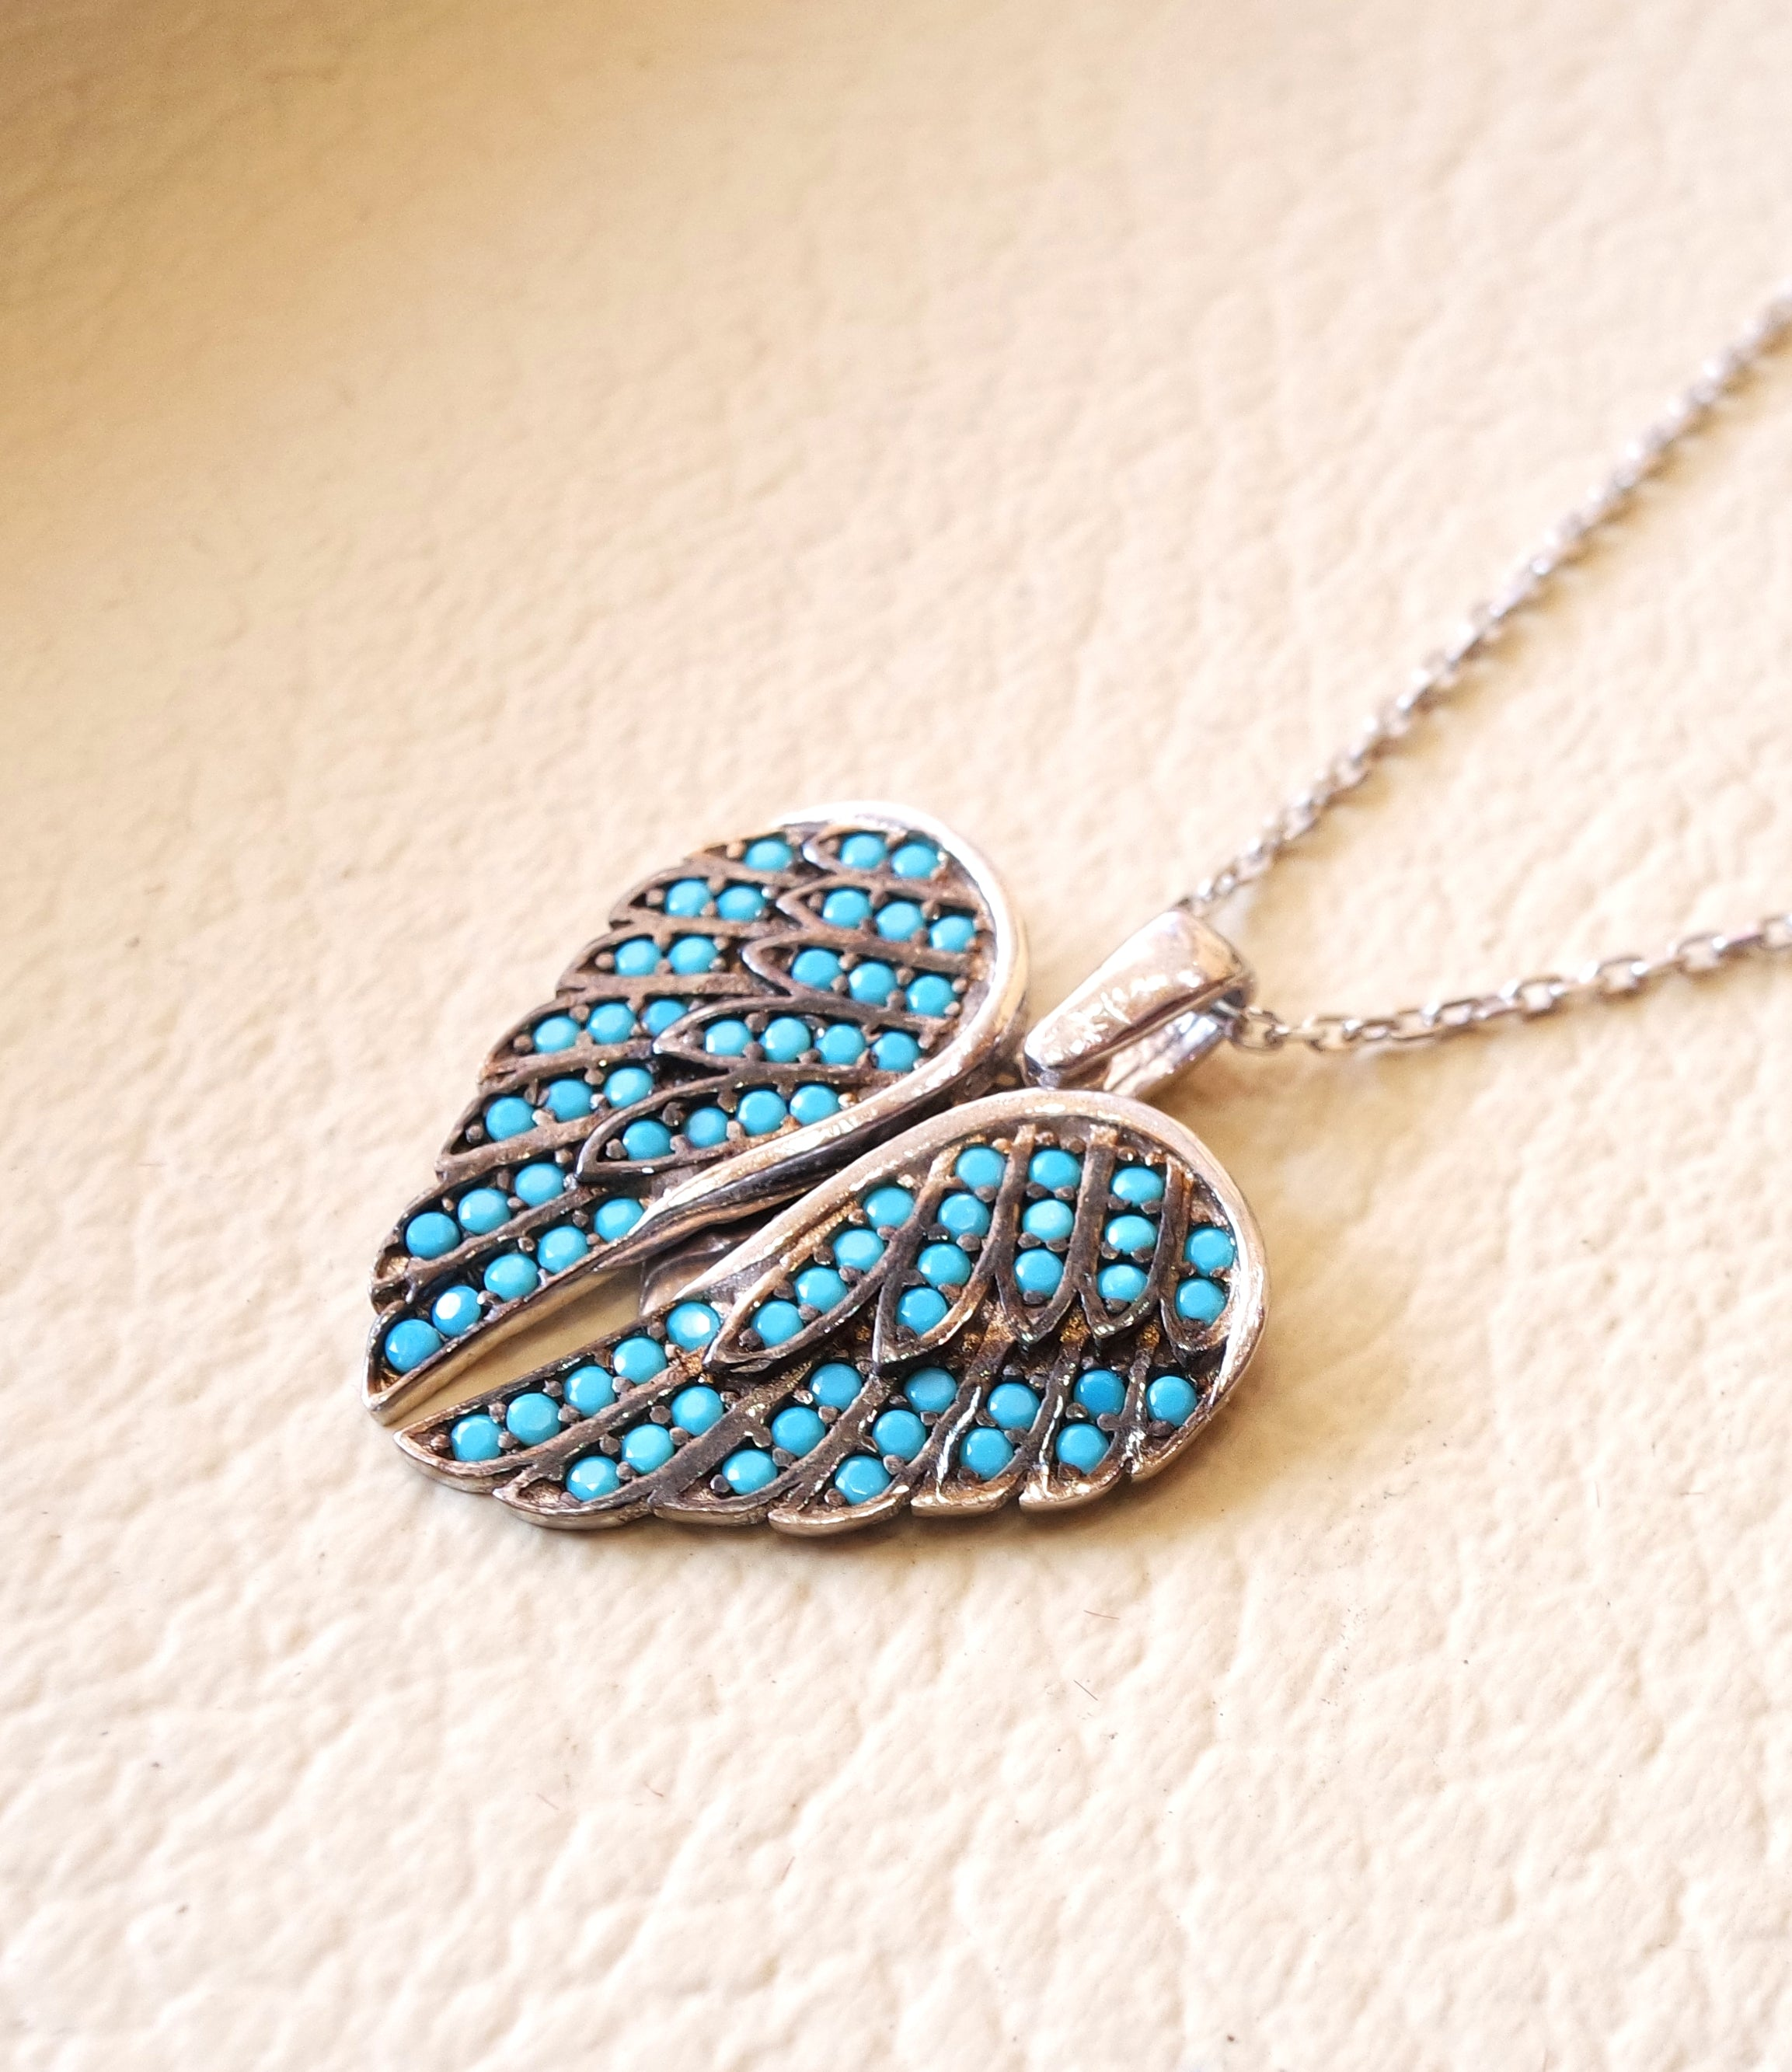 Angel wings heart inside pendant necklace sterling silver 925 nano turquoise micro setting